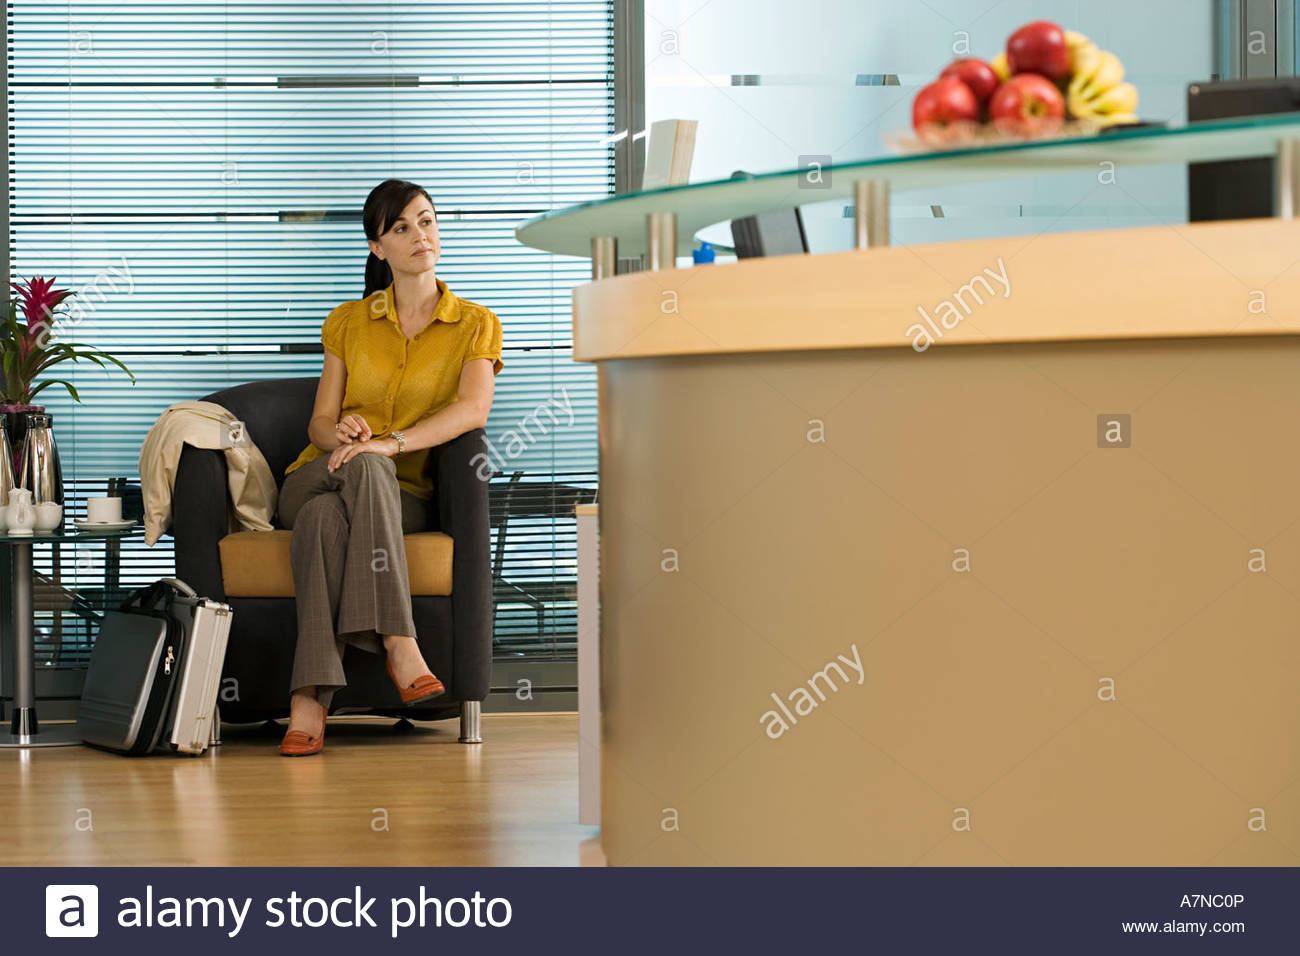 Businesswoman sitting in office reception area waiting patiently reception desk in foreground - Stock Image